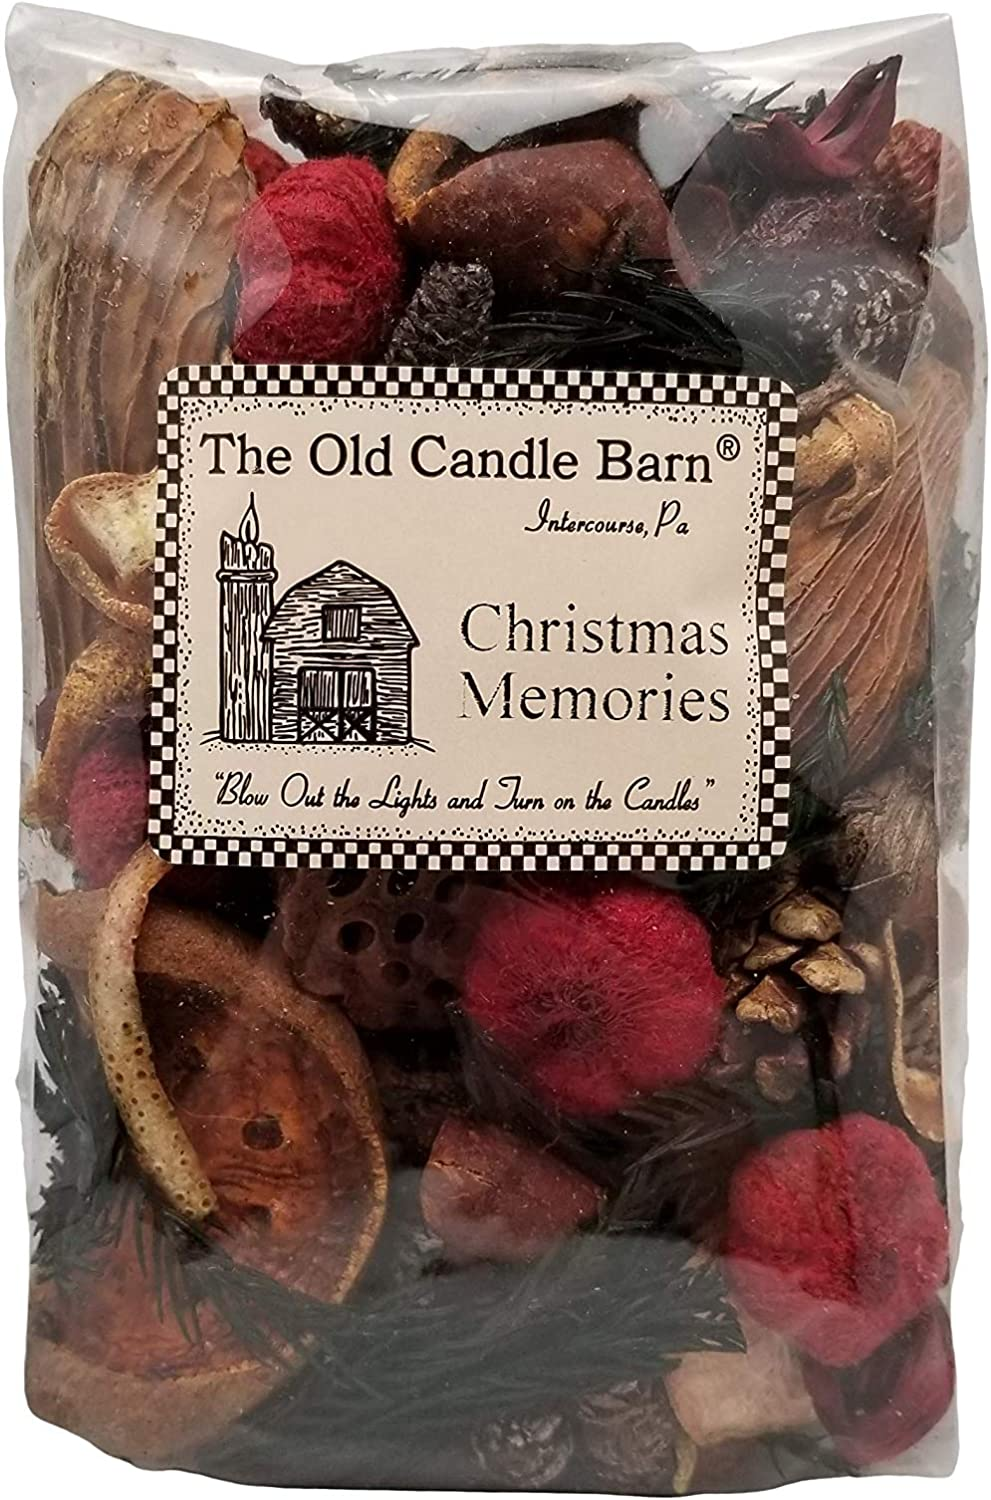 Old Candle Barn Christmas Memories Potpourri 4 Cup Bag - Perfect Fall, Winter Decoration or Bowl Filler - Beautiful Christmas Scent - Made in USA